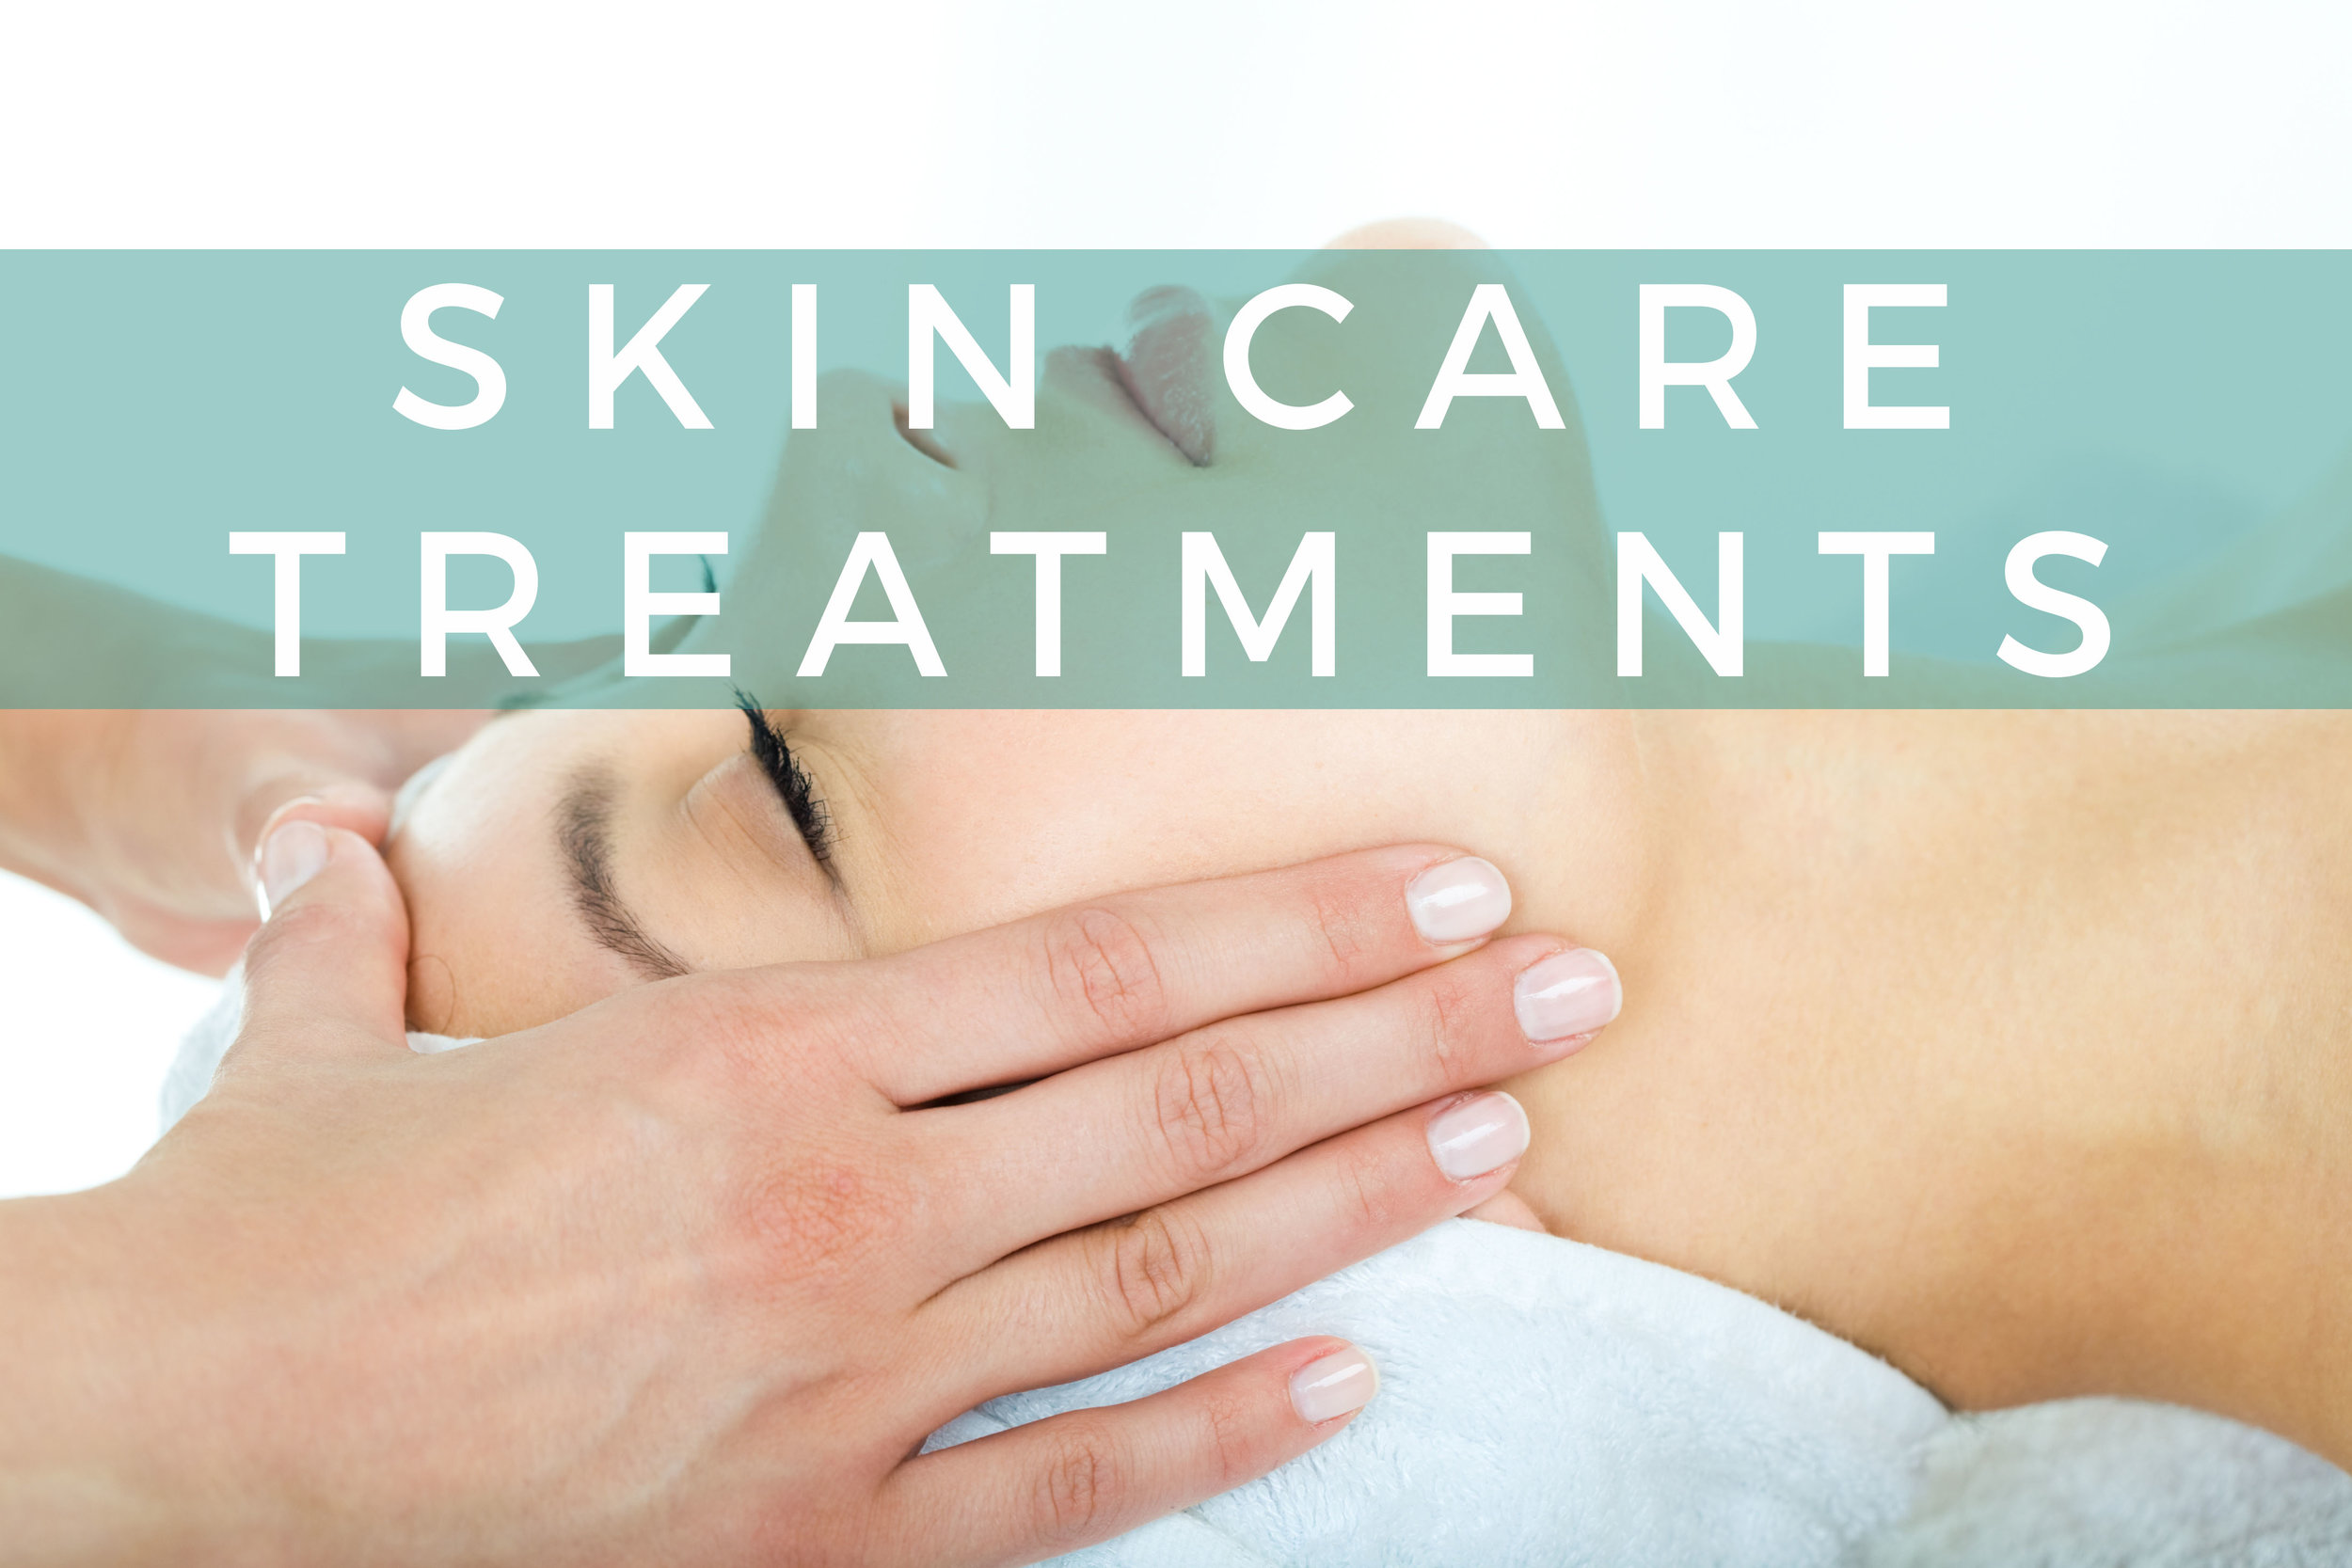 Amy Rojek Skin Care - Facials and Microneedling